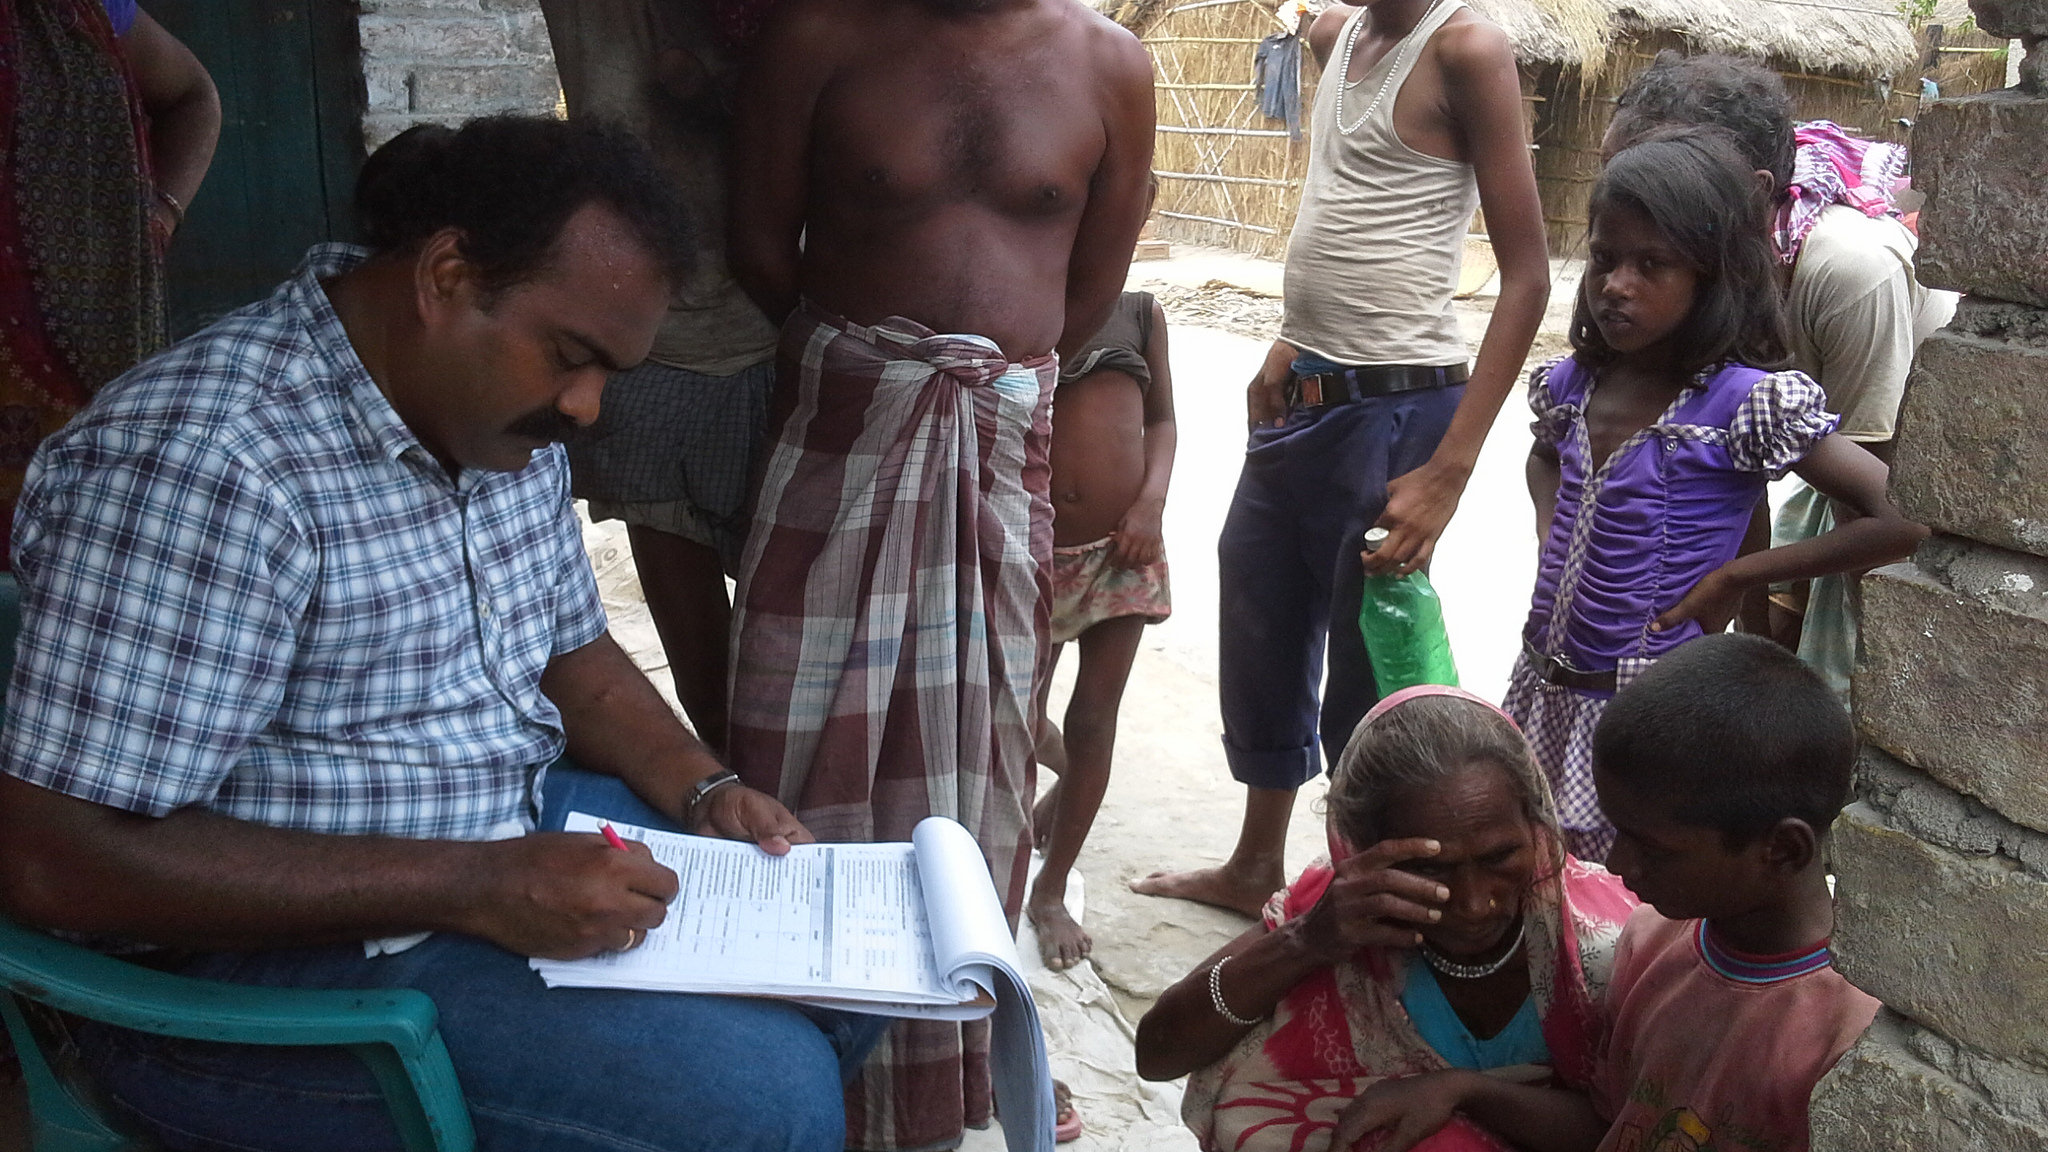 Although India depends on data from sample surveys for tracking health parameters, there is a need to improve civil registration and vital statistics systems. Credit: cdcglobal/Flickr, CC BY 2.0